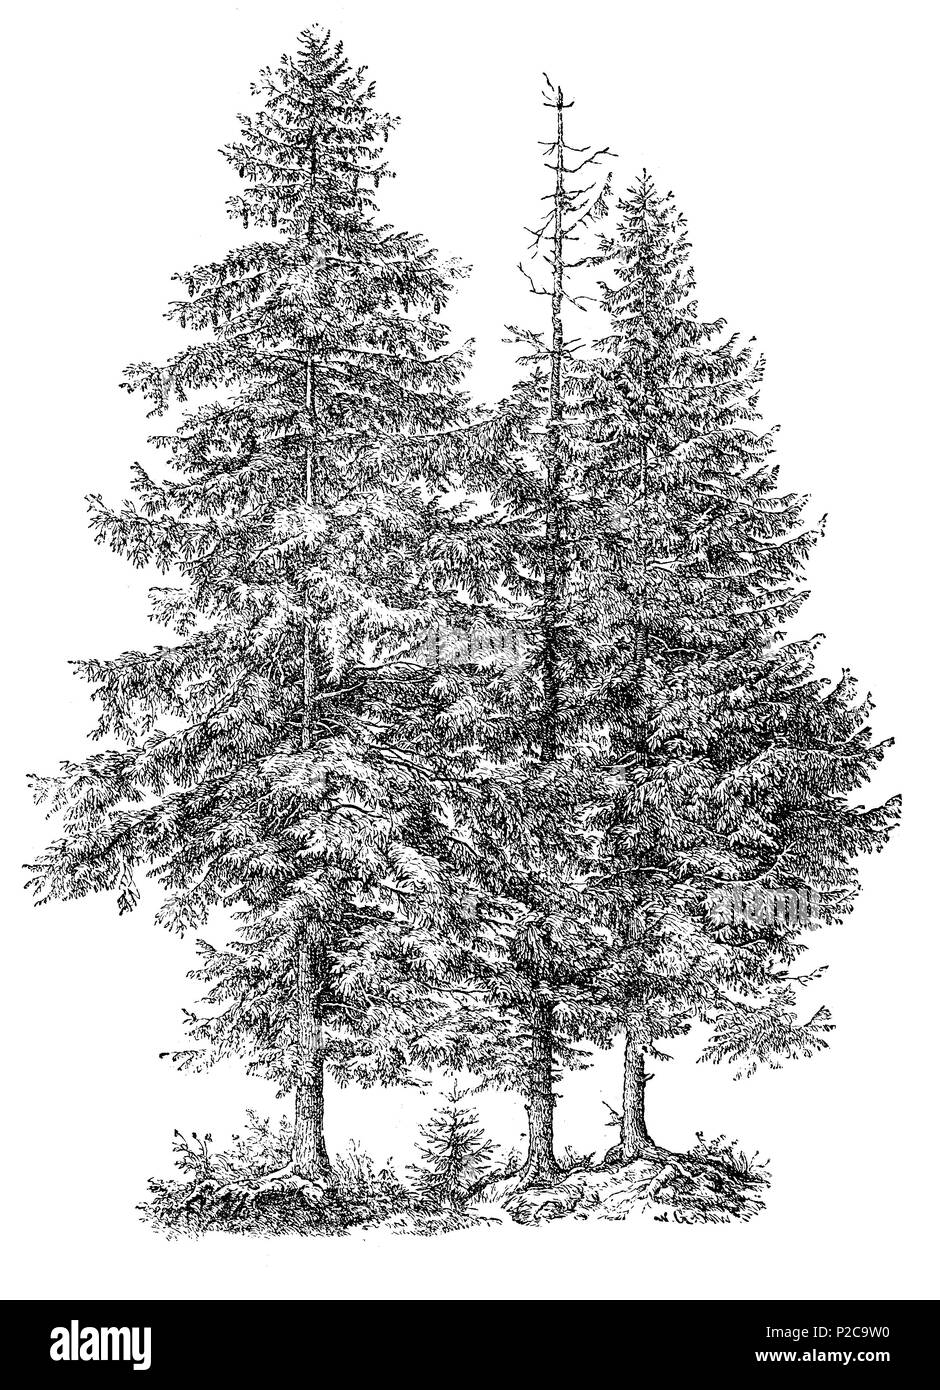 Norway spruce, Picea vulgaris, Picea abies, Fichte, digital improved reproduction from an original print from the 19th century, 1881 - Stock Image